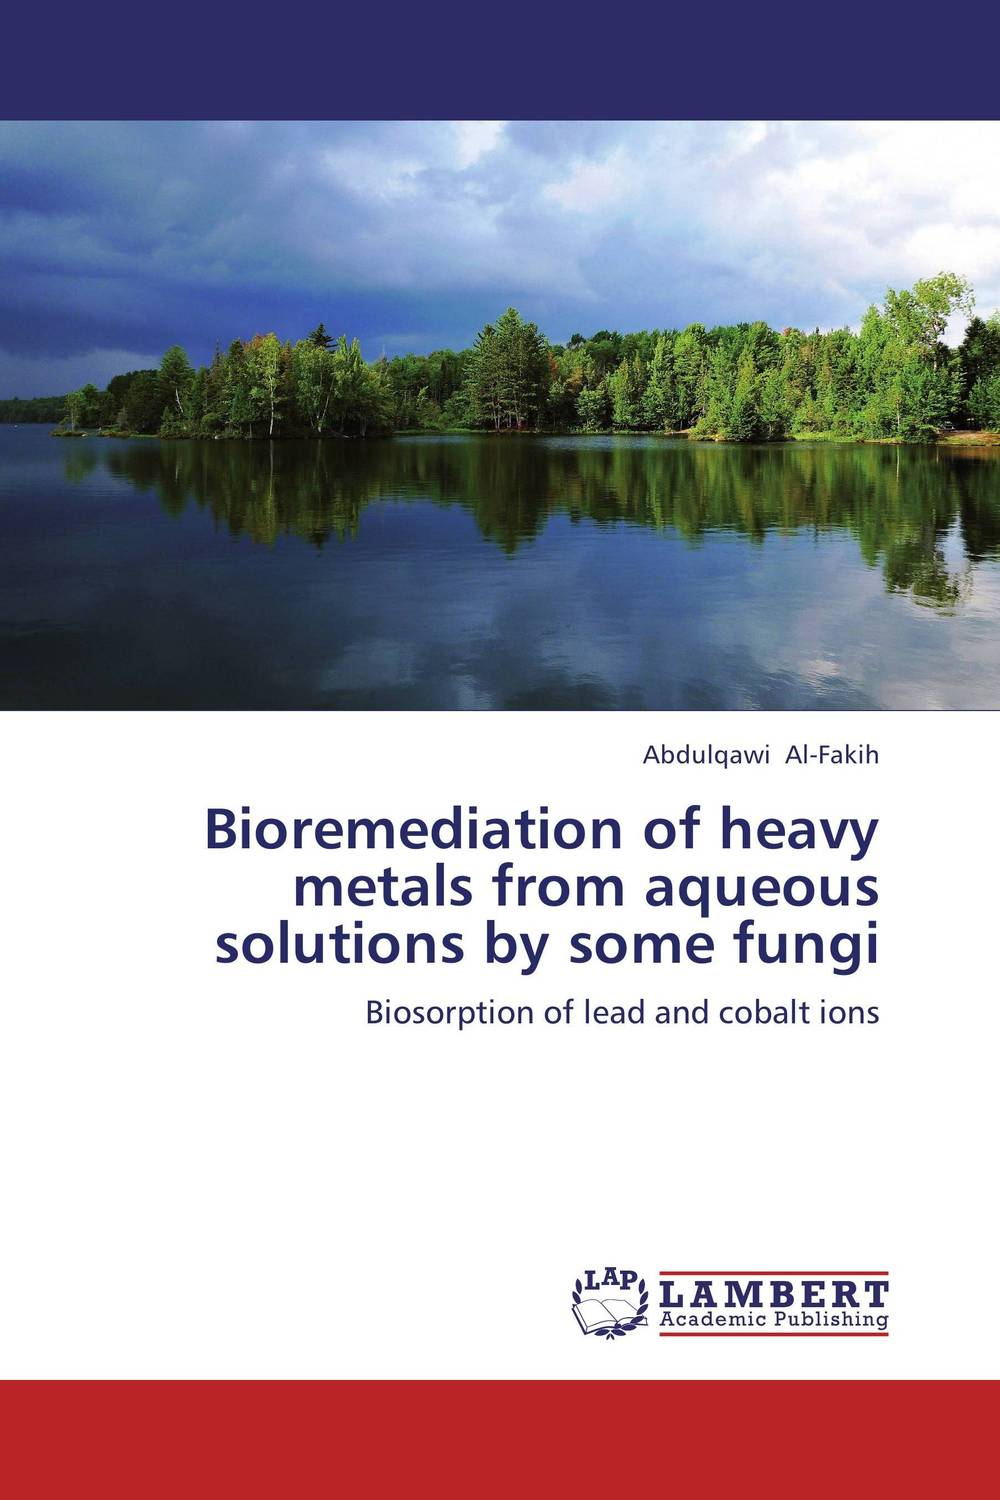 Bioremediation of heavy metals from aqueous solutions by some fungi